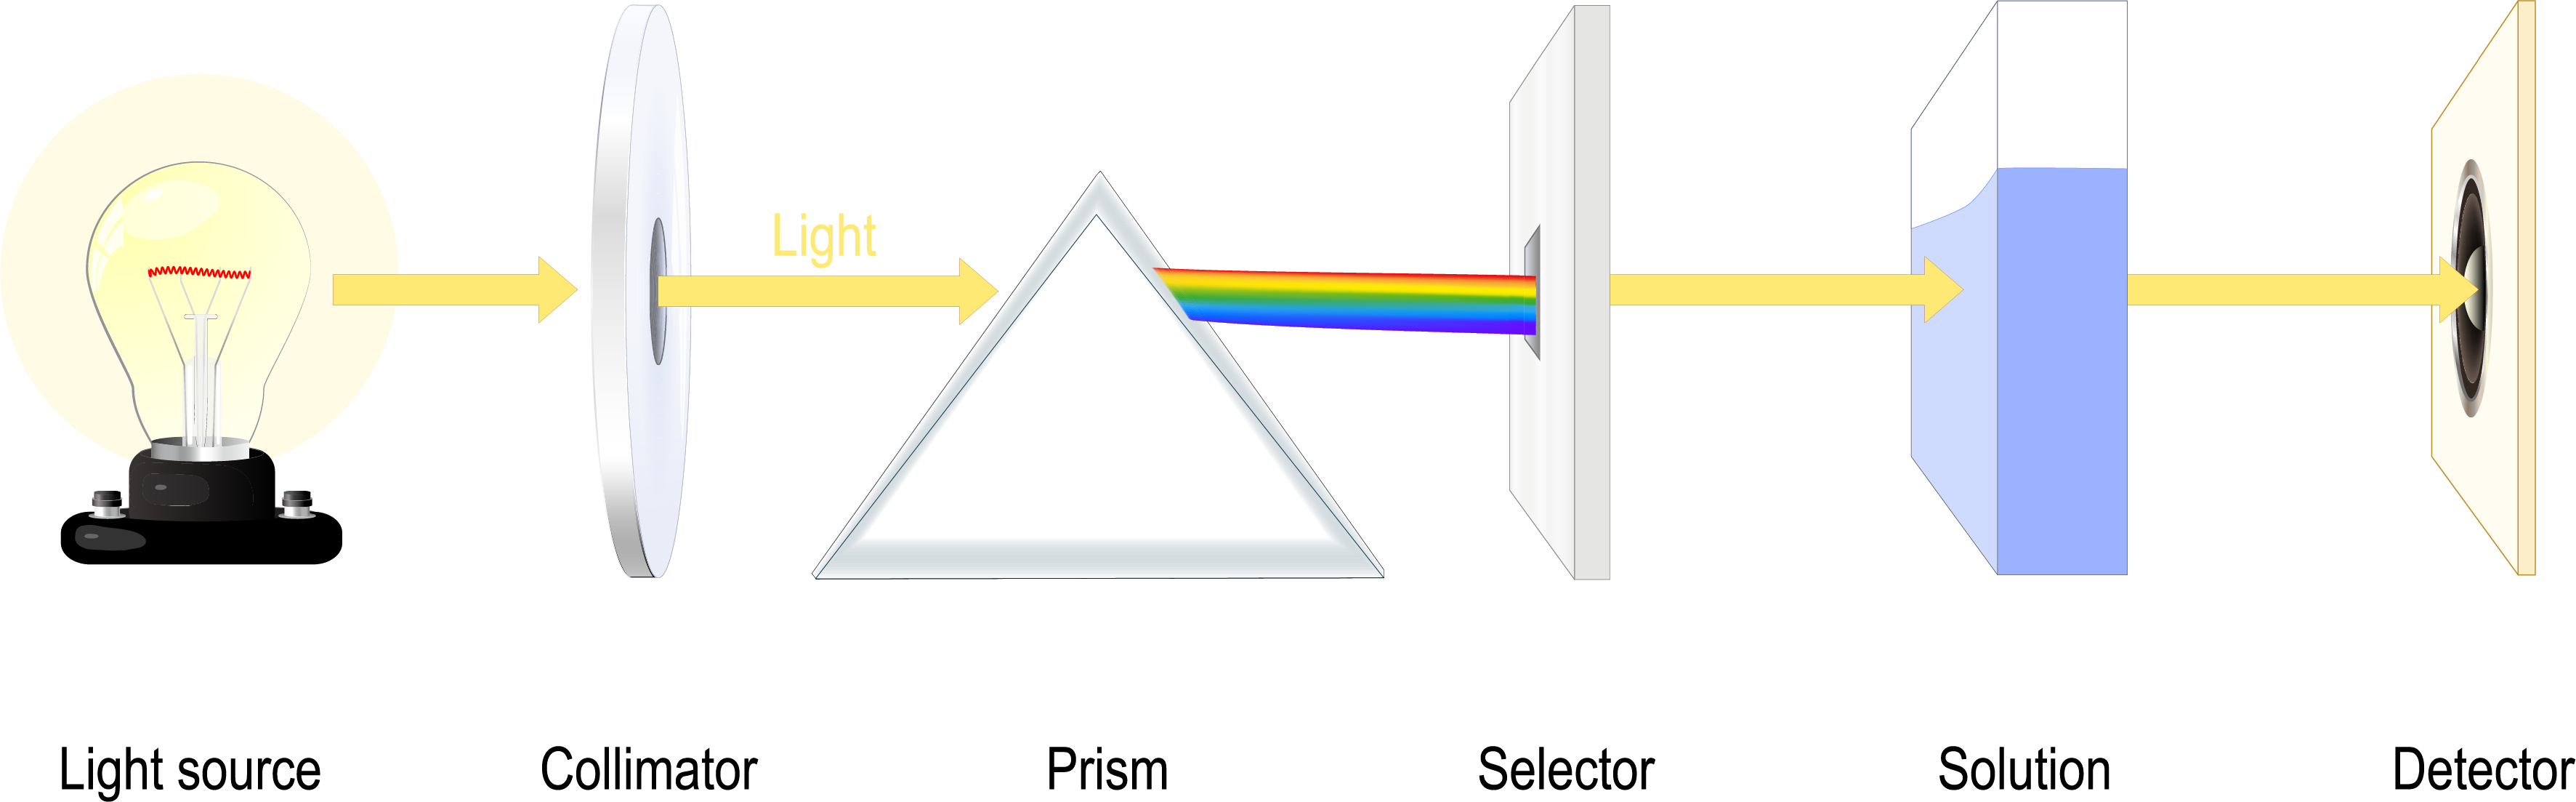 What is the Difference Between a Photometer and Spectrophotometer?